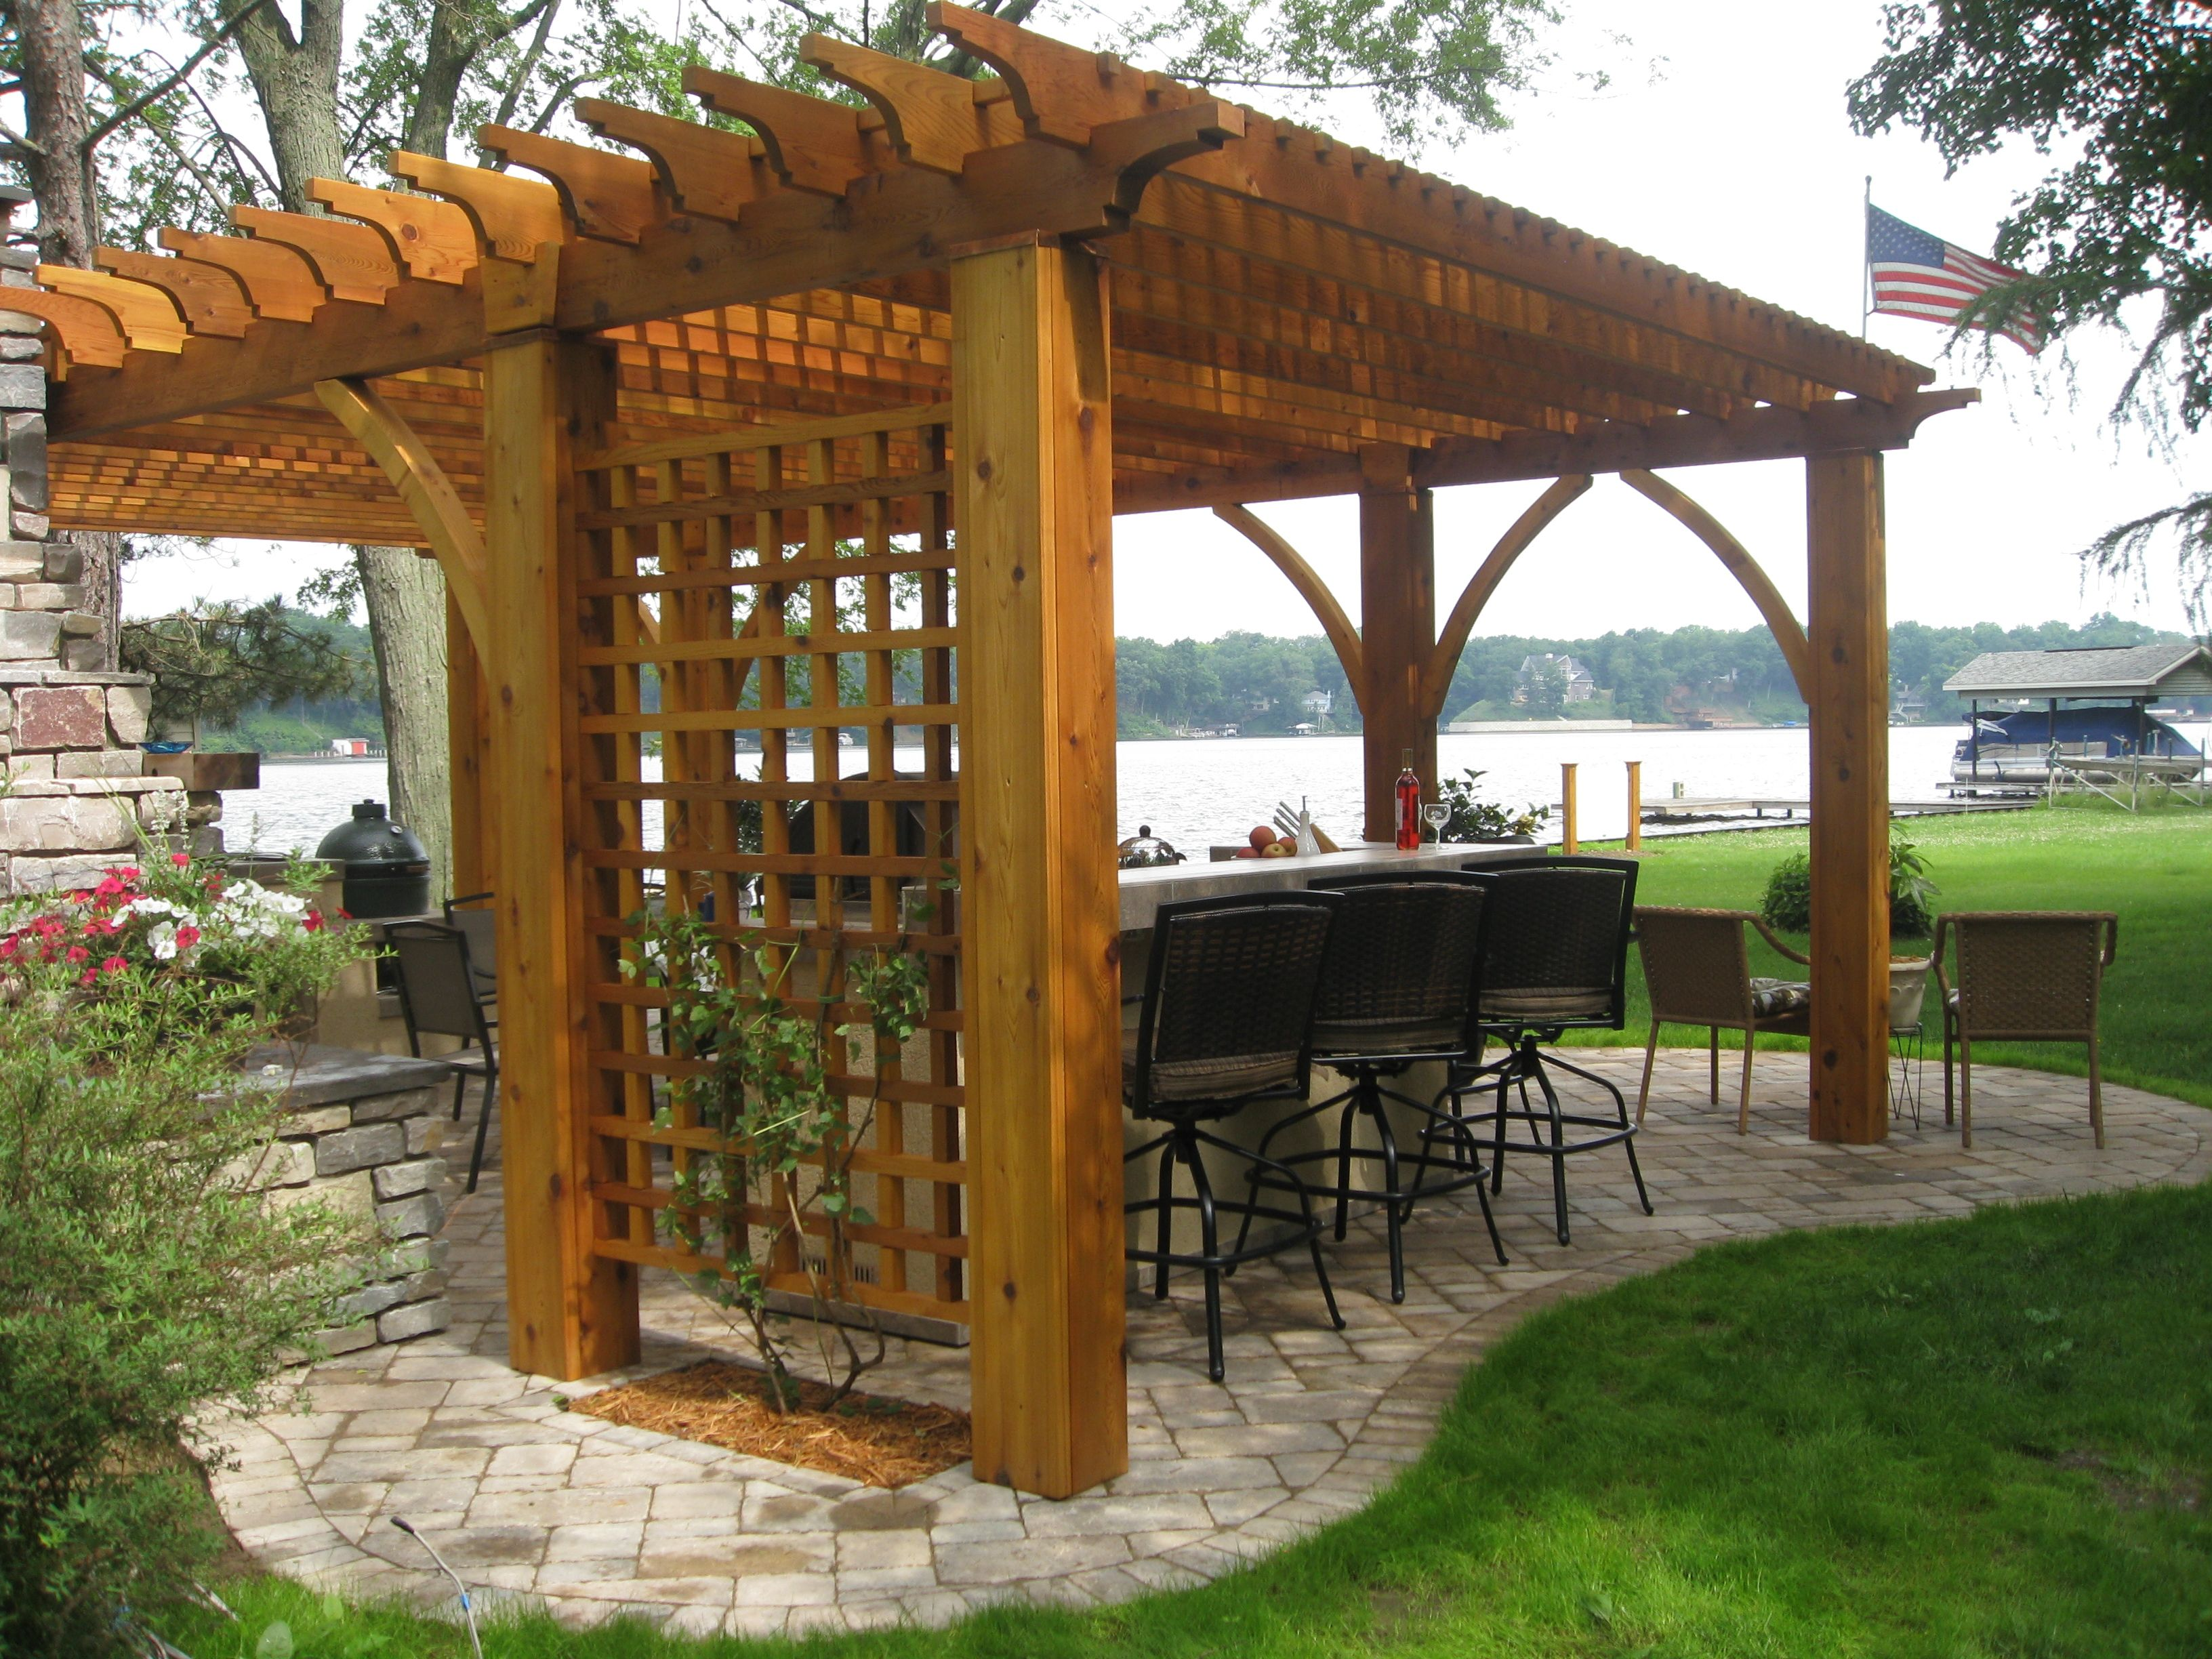 Pergola with siding for vertical gardening not organic patio shape